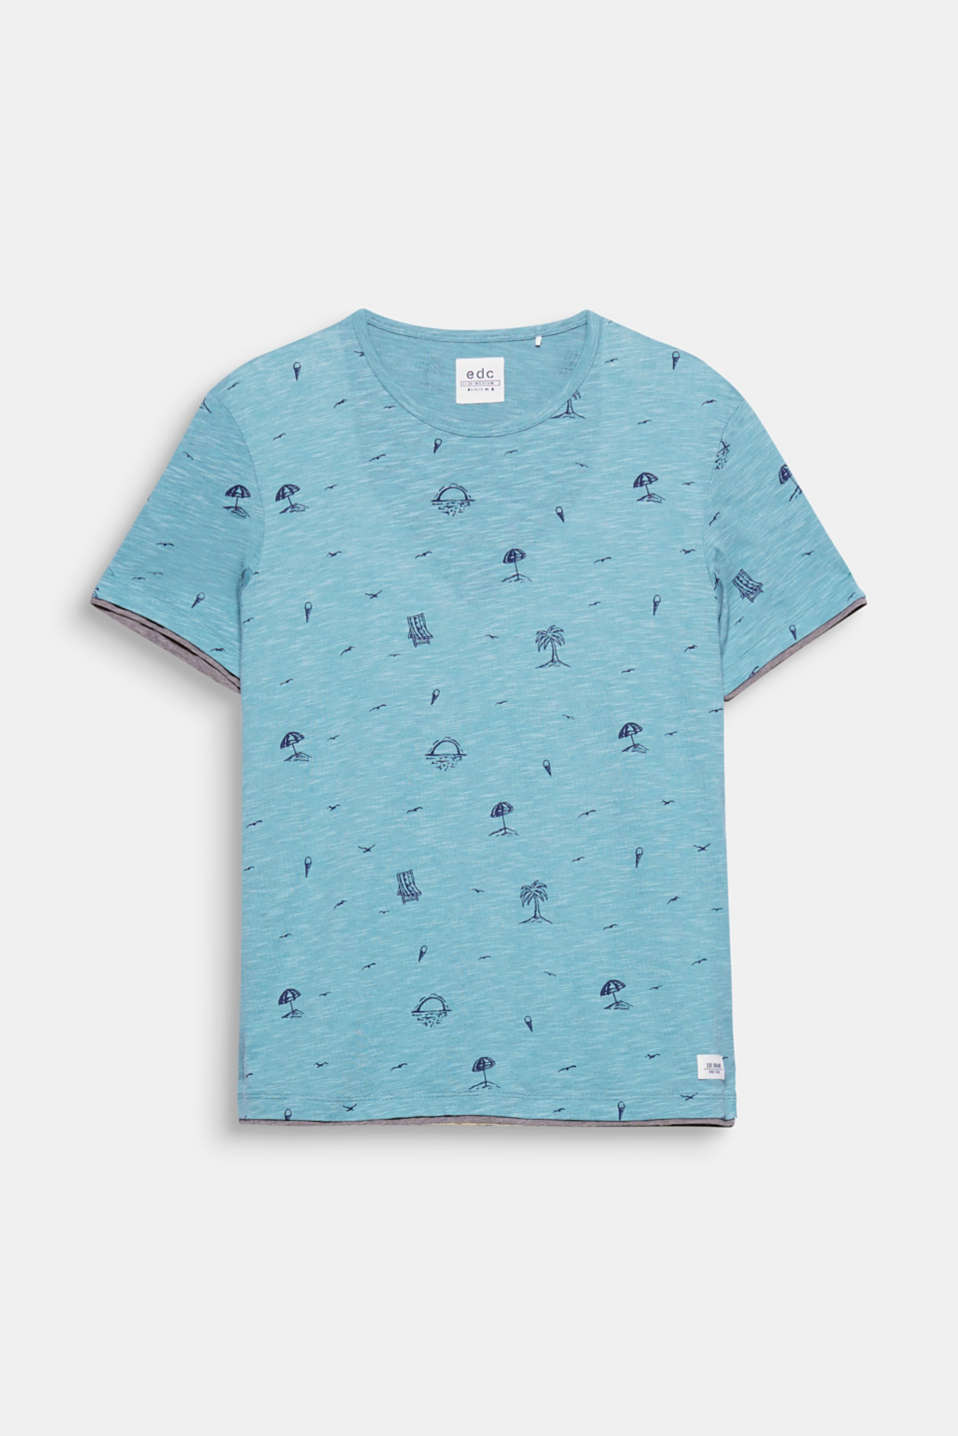 We love summer – sun, beach and ice-cream! The matching symbol prints on this T-shirt make us excited for summer.